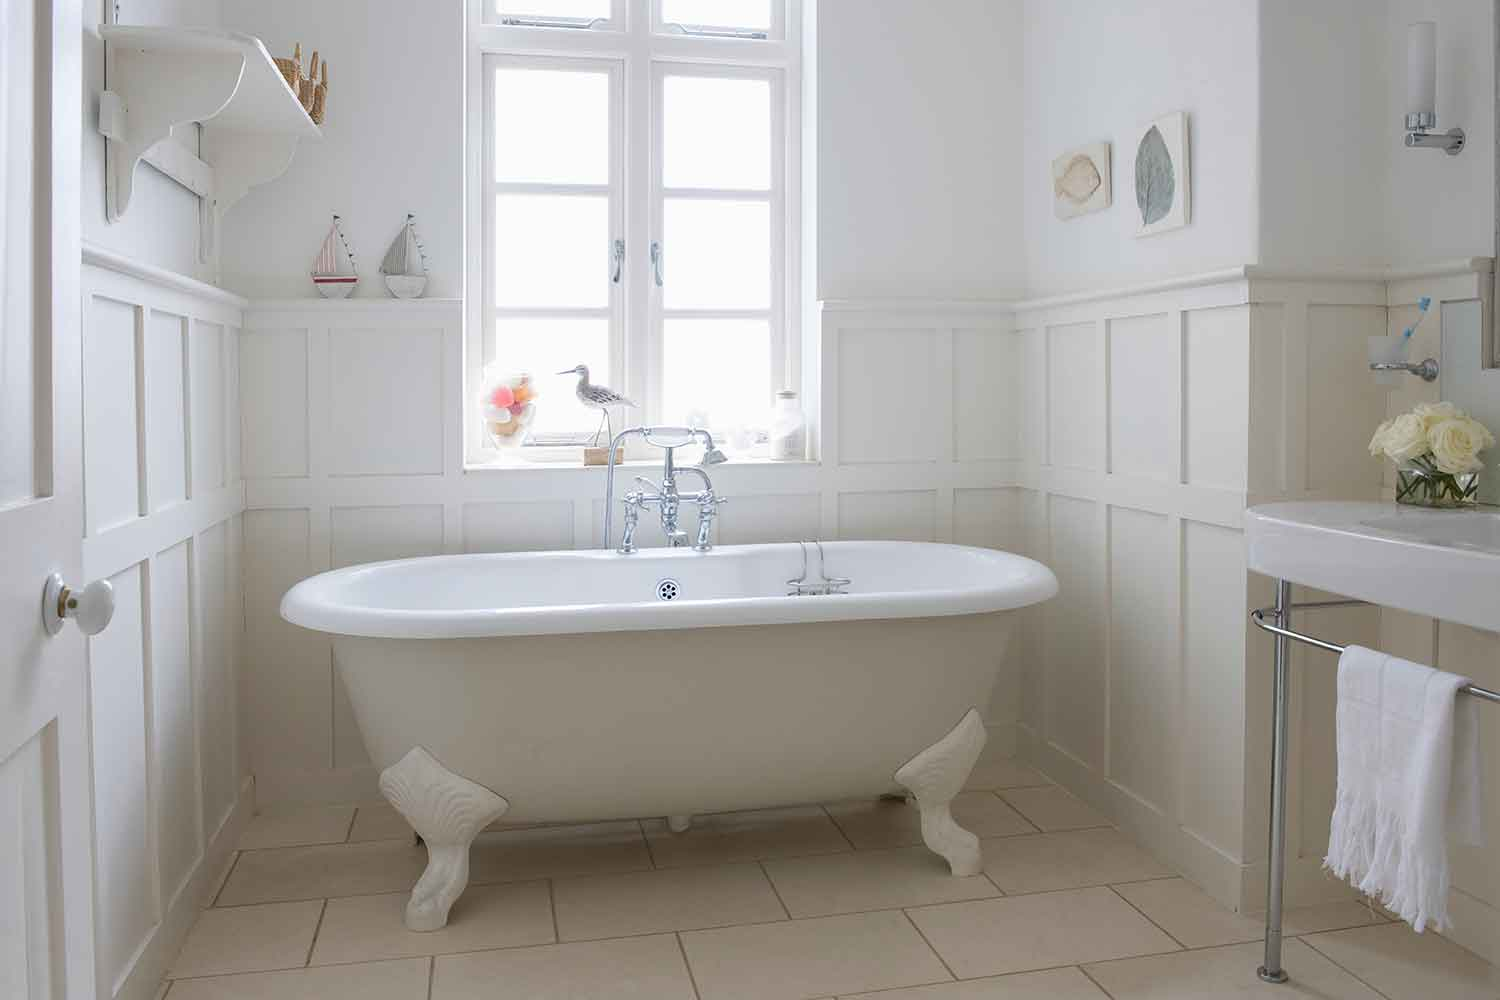 does your bathroom really need a bath? | better homes and gardens